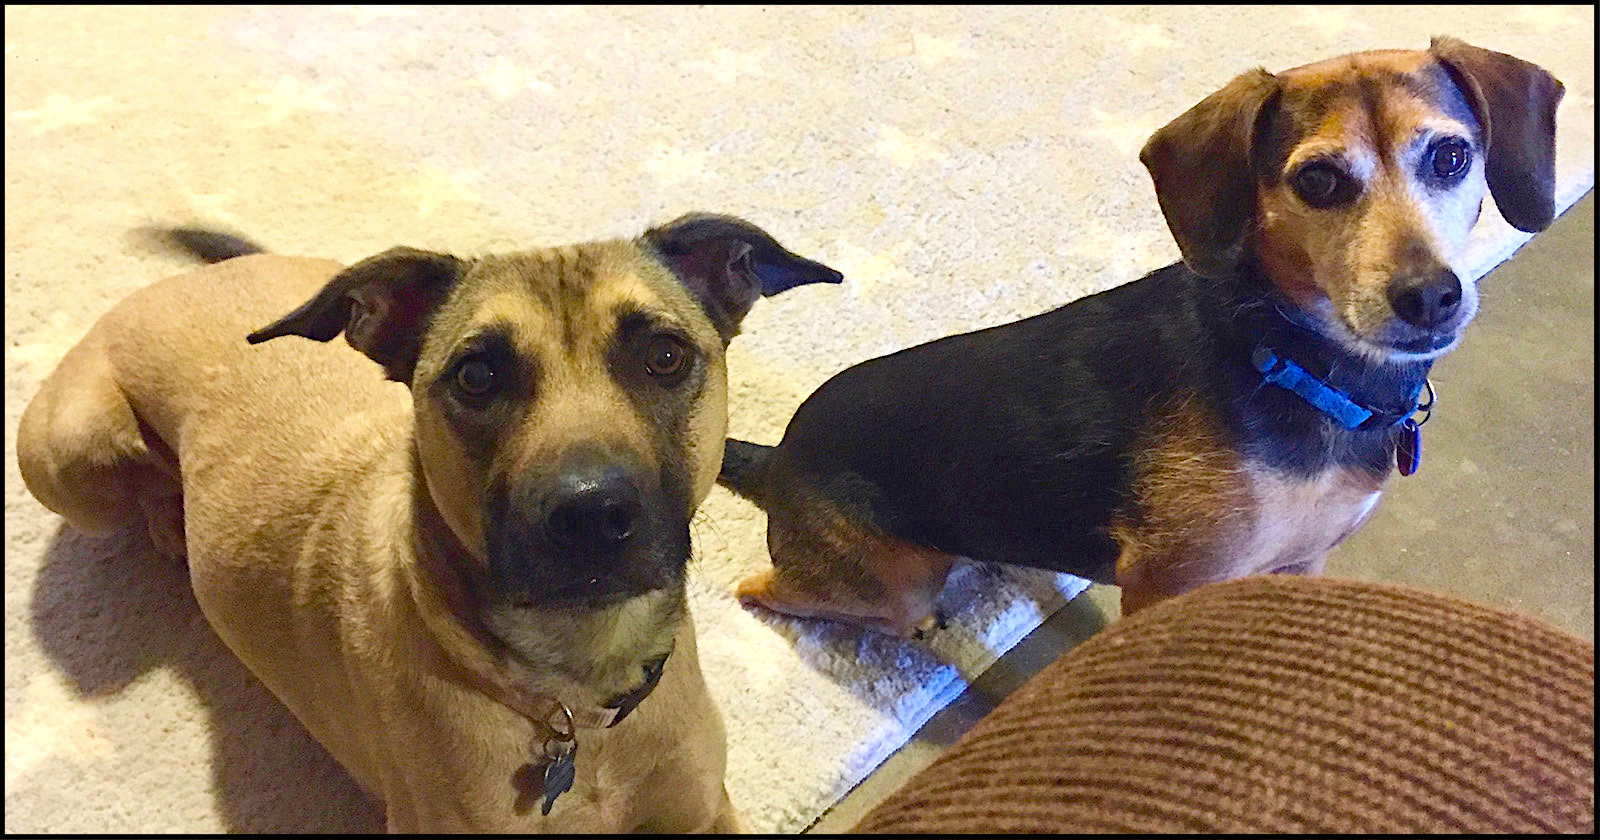 tan dog with black muzzle and smaller black dog stare at the camera expectantly